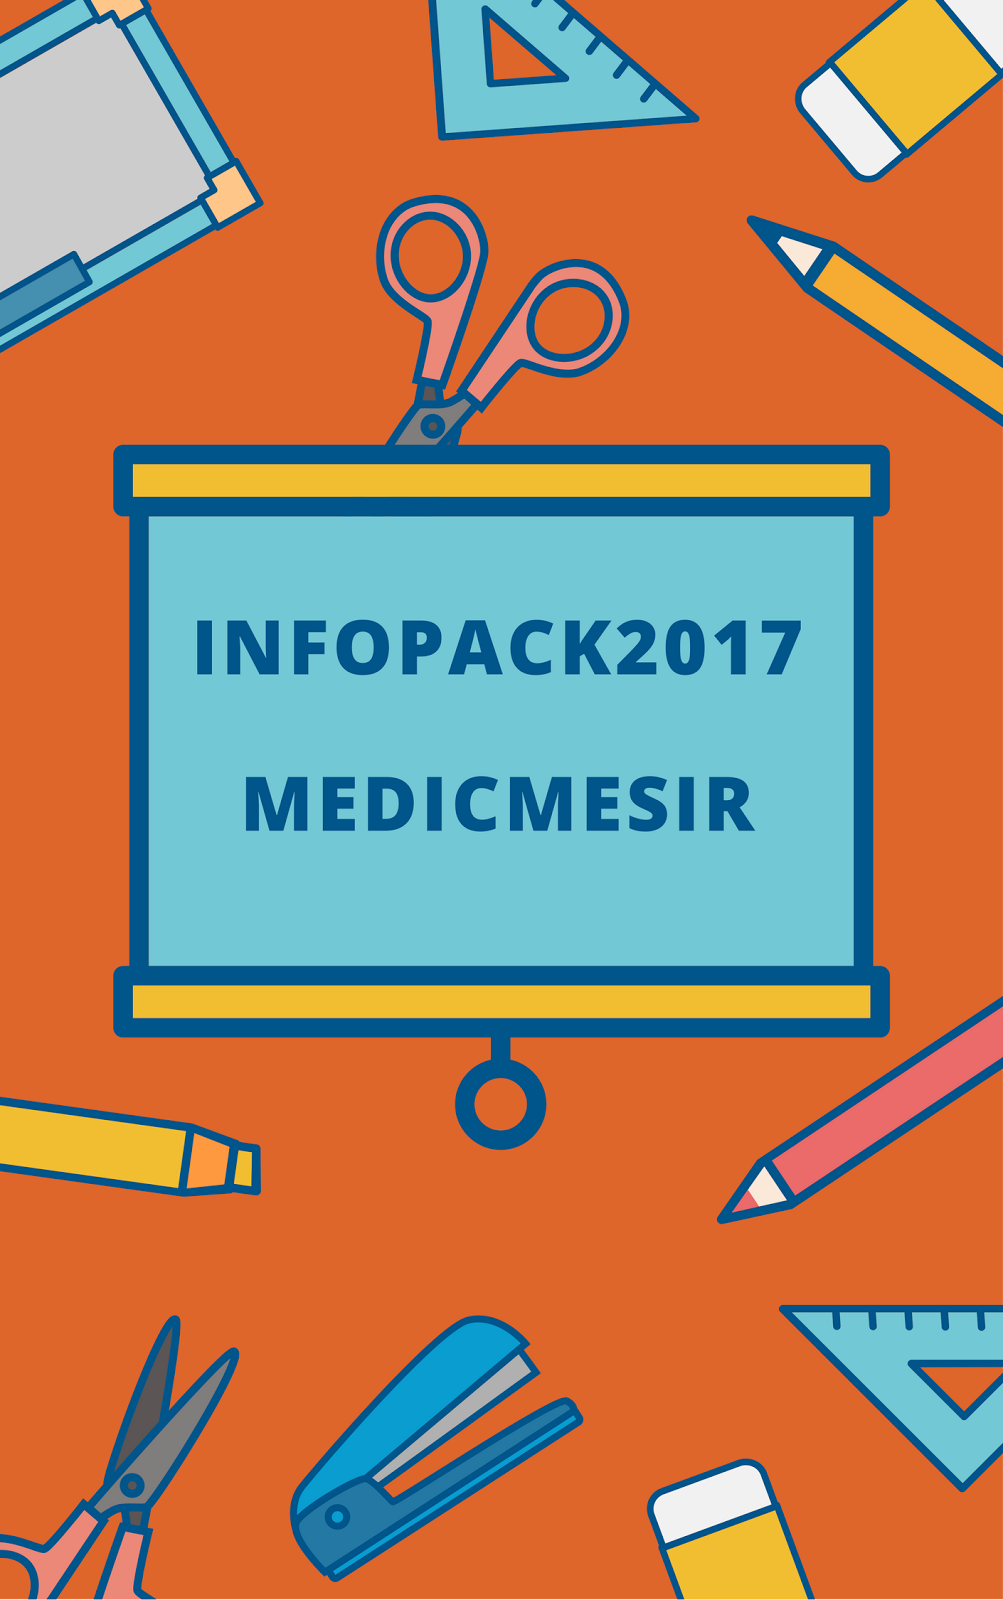 INFOPACK 2017